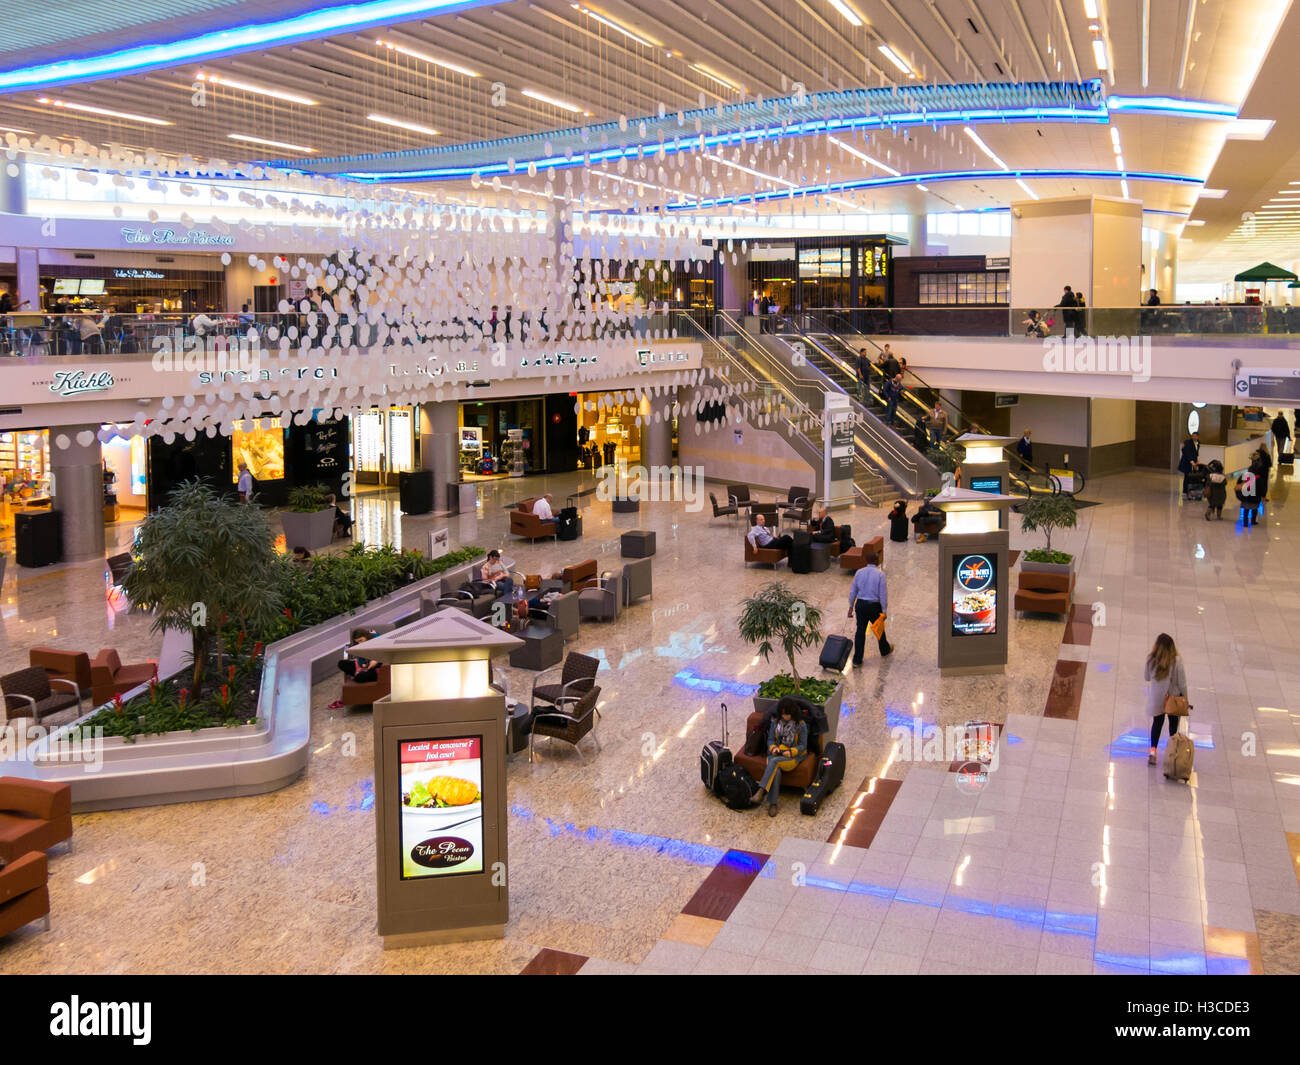 People Shops And Restaurants In Maynard H Jackson Jr Terminal On